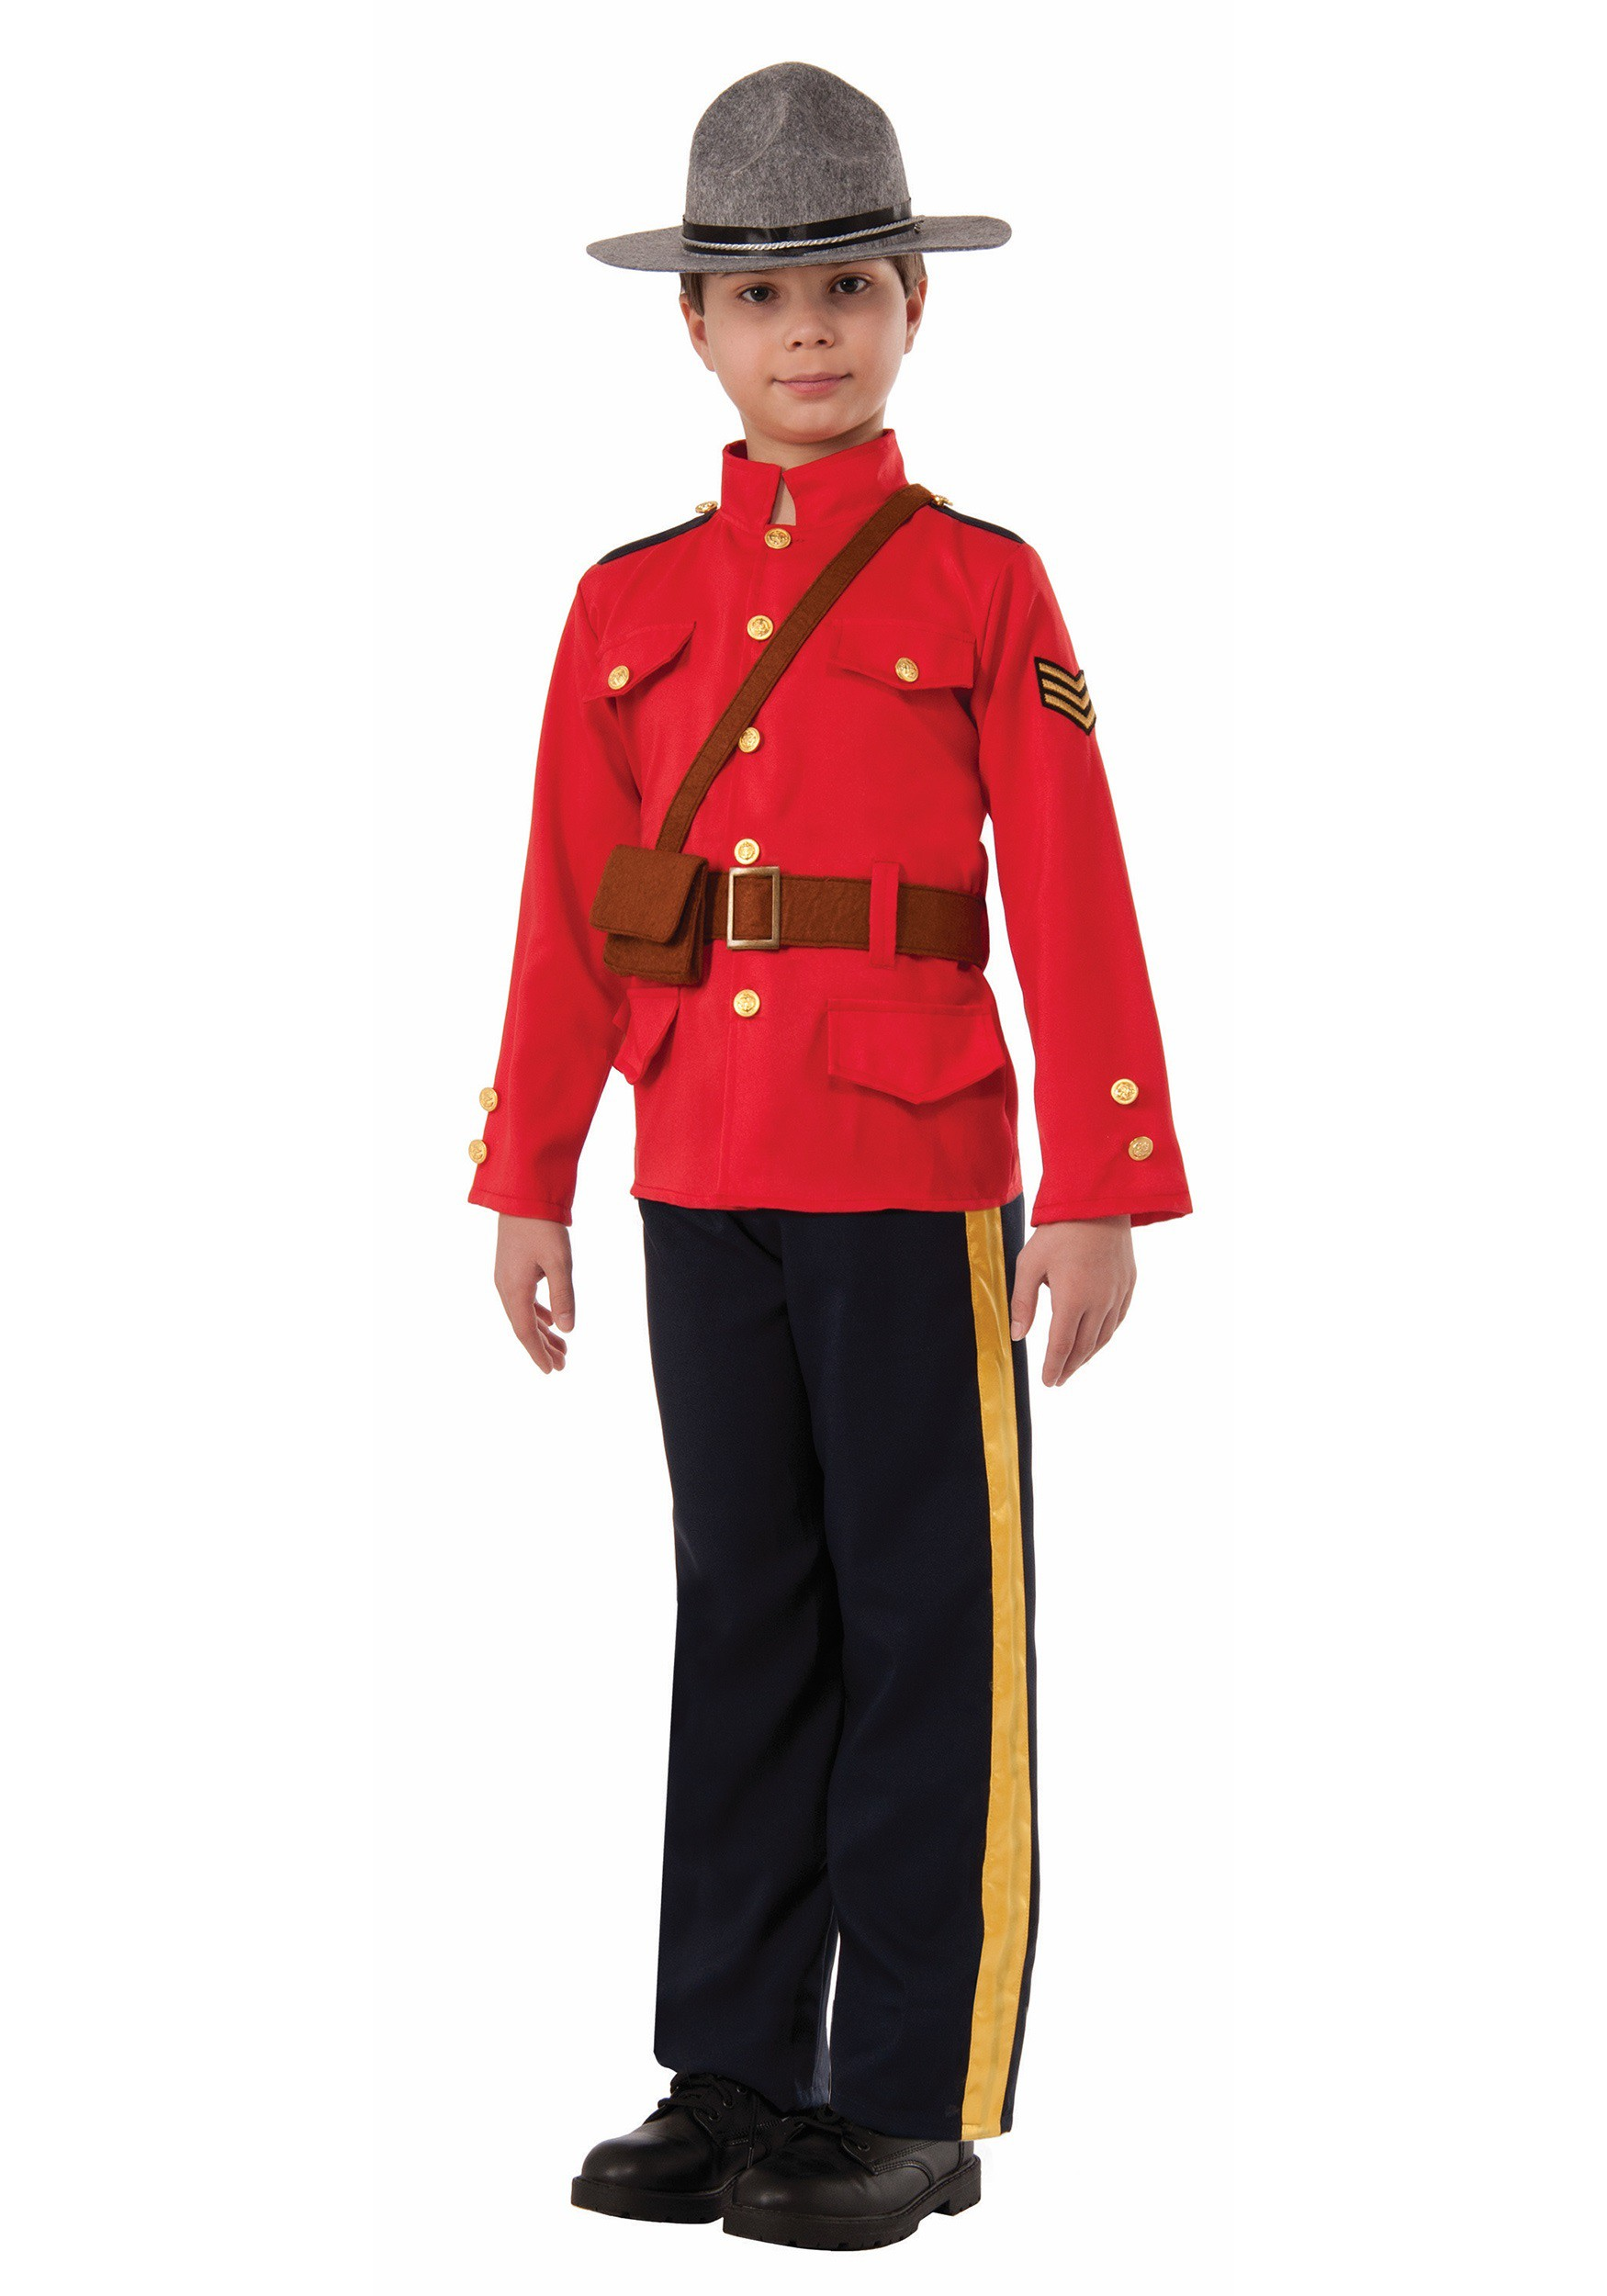 sc 1 st  Halloween Costumes : mountie halloween costume  - Germanpascual.Com